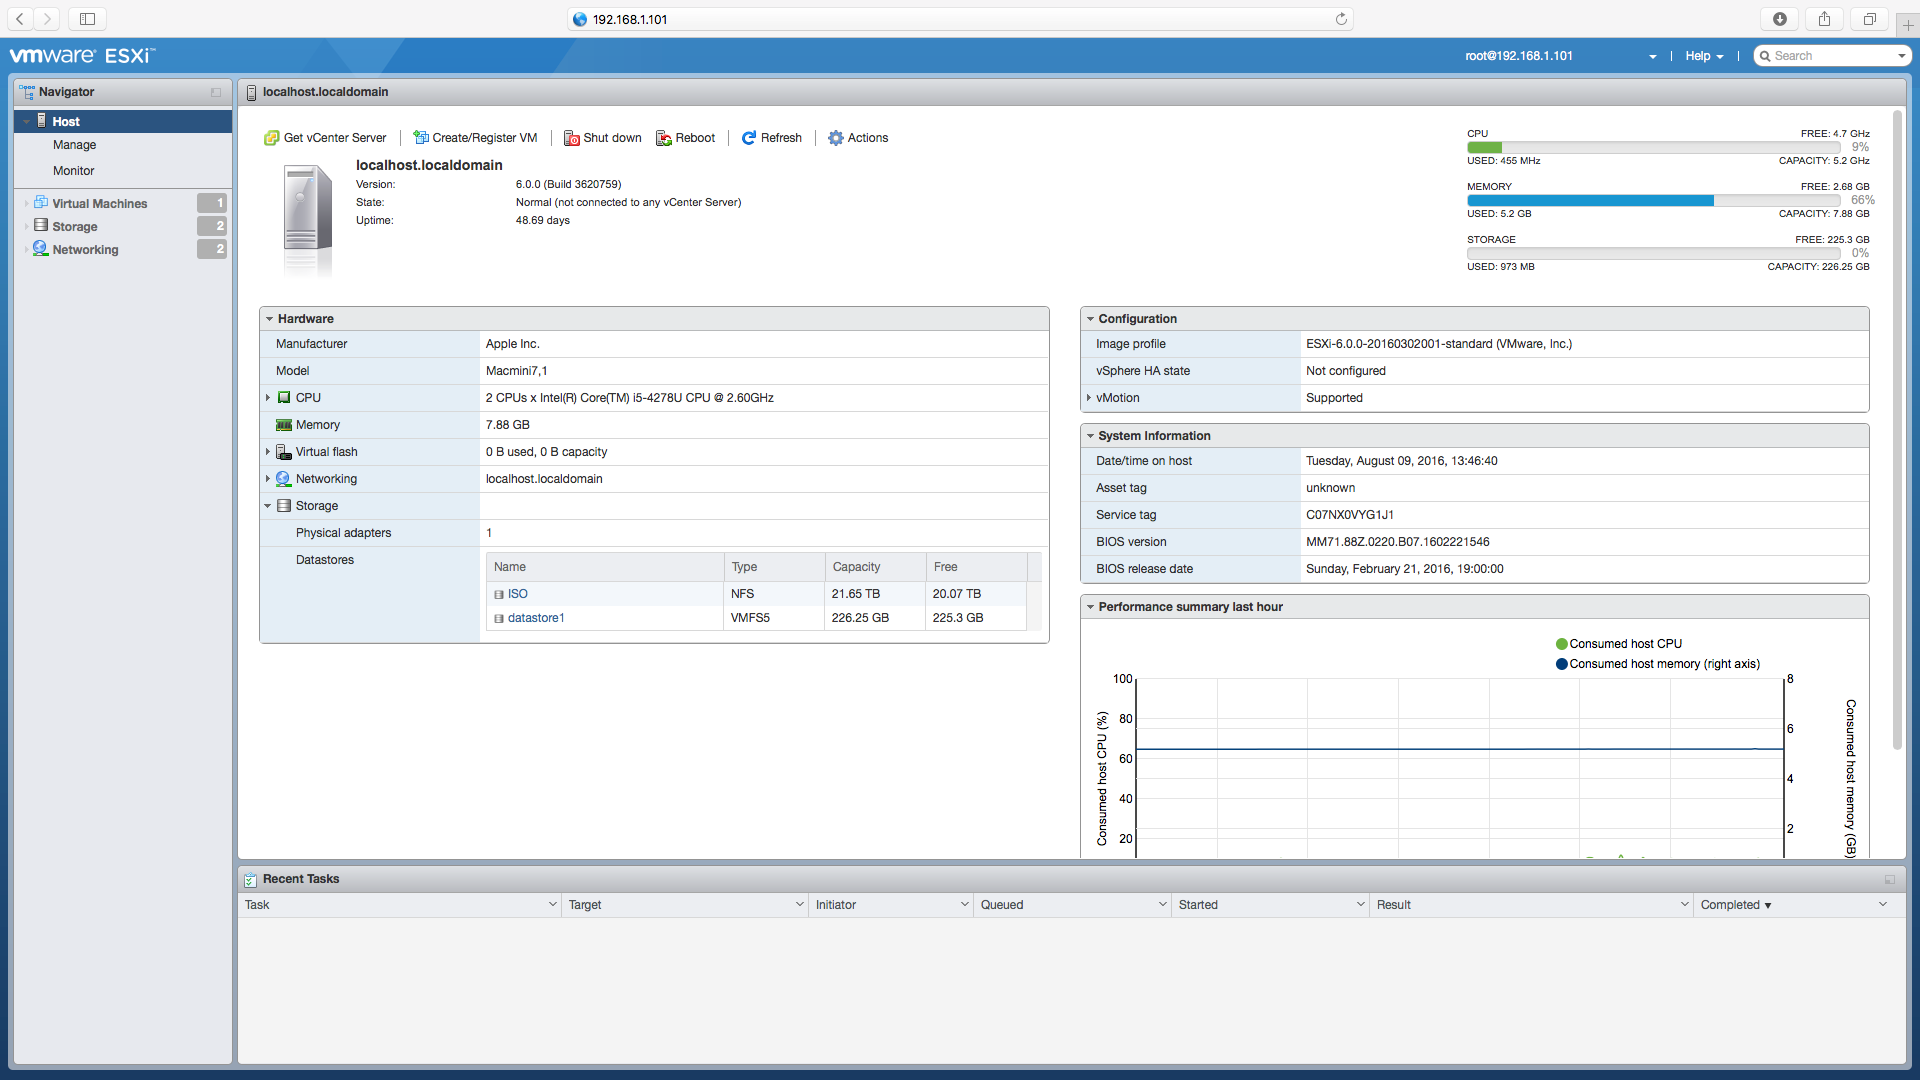 How to Enable SSH in the VMware ESXi Embedded Host Client